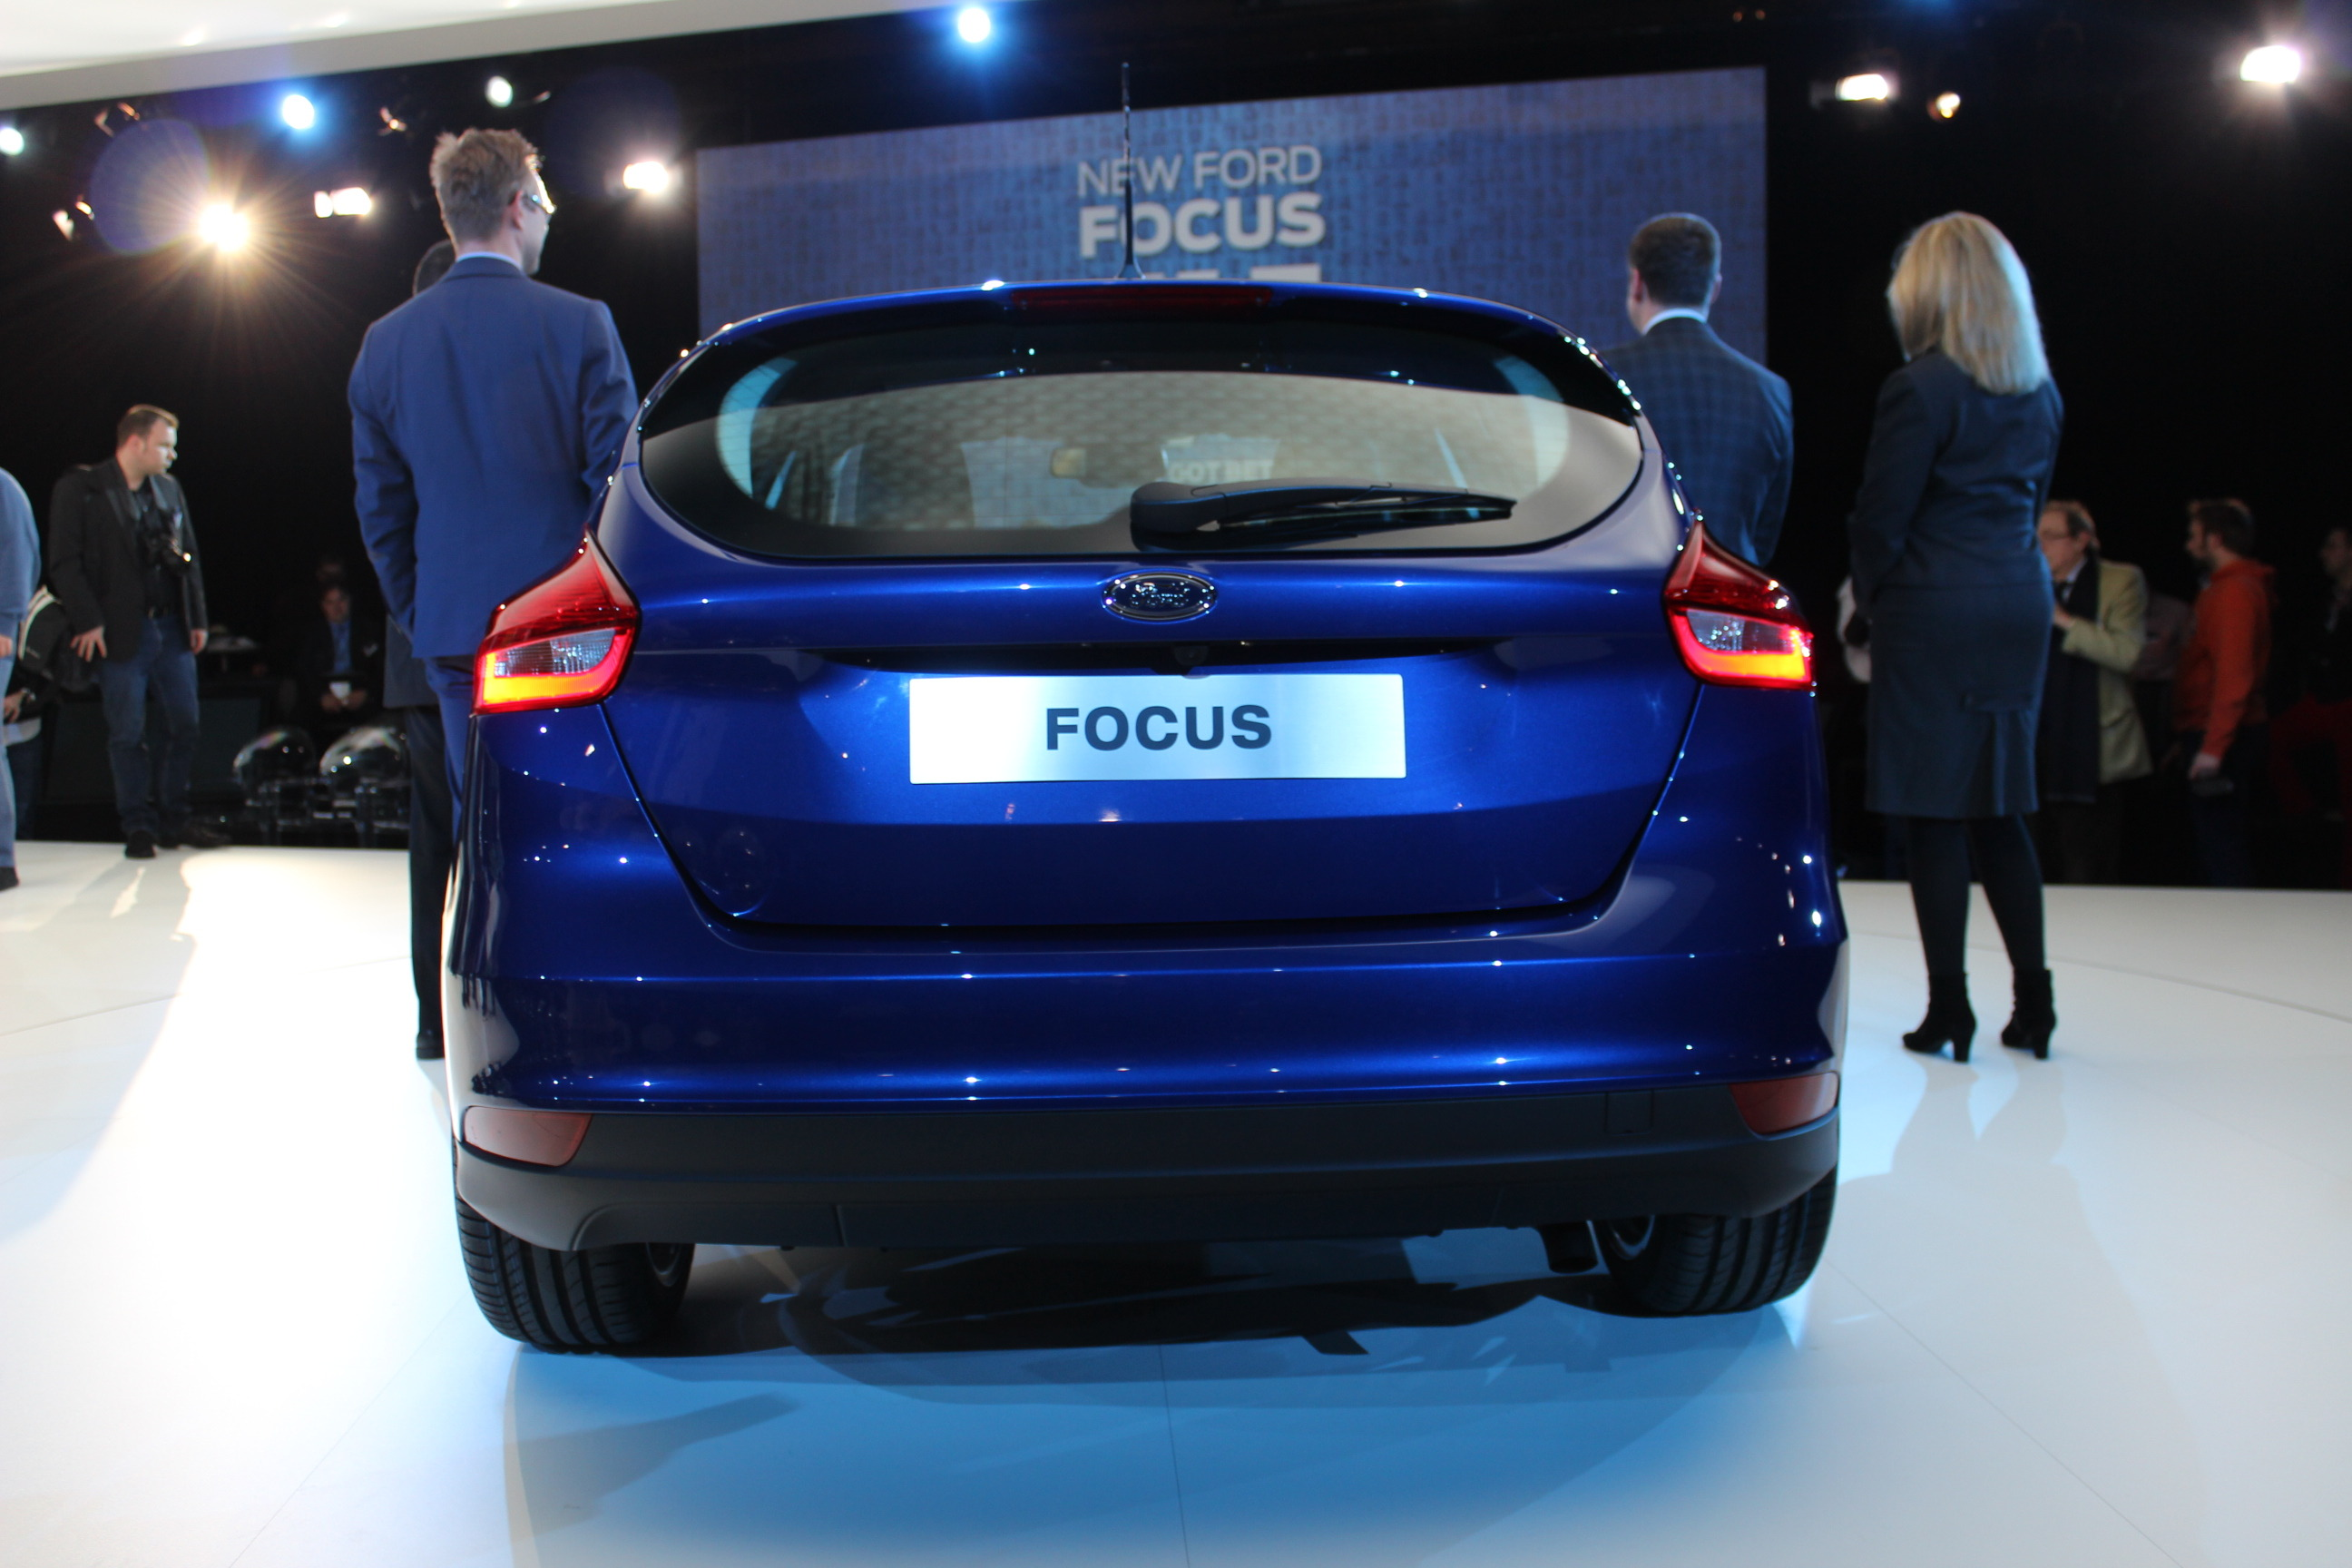 Pr sentation vid o ford focus 3 restyl e meilleure en for Ford focus 2006 interieur